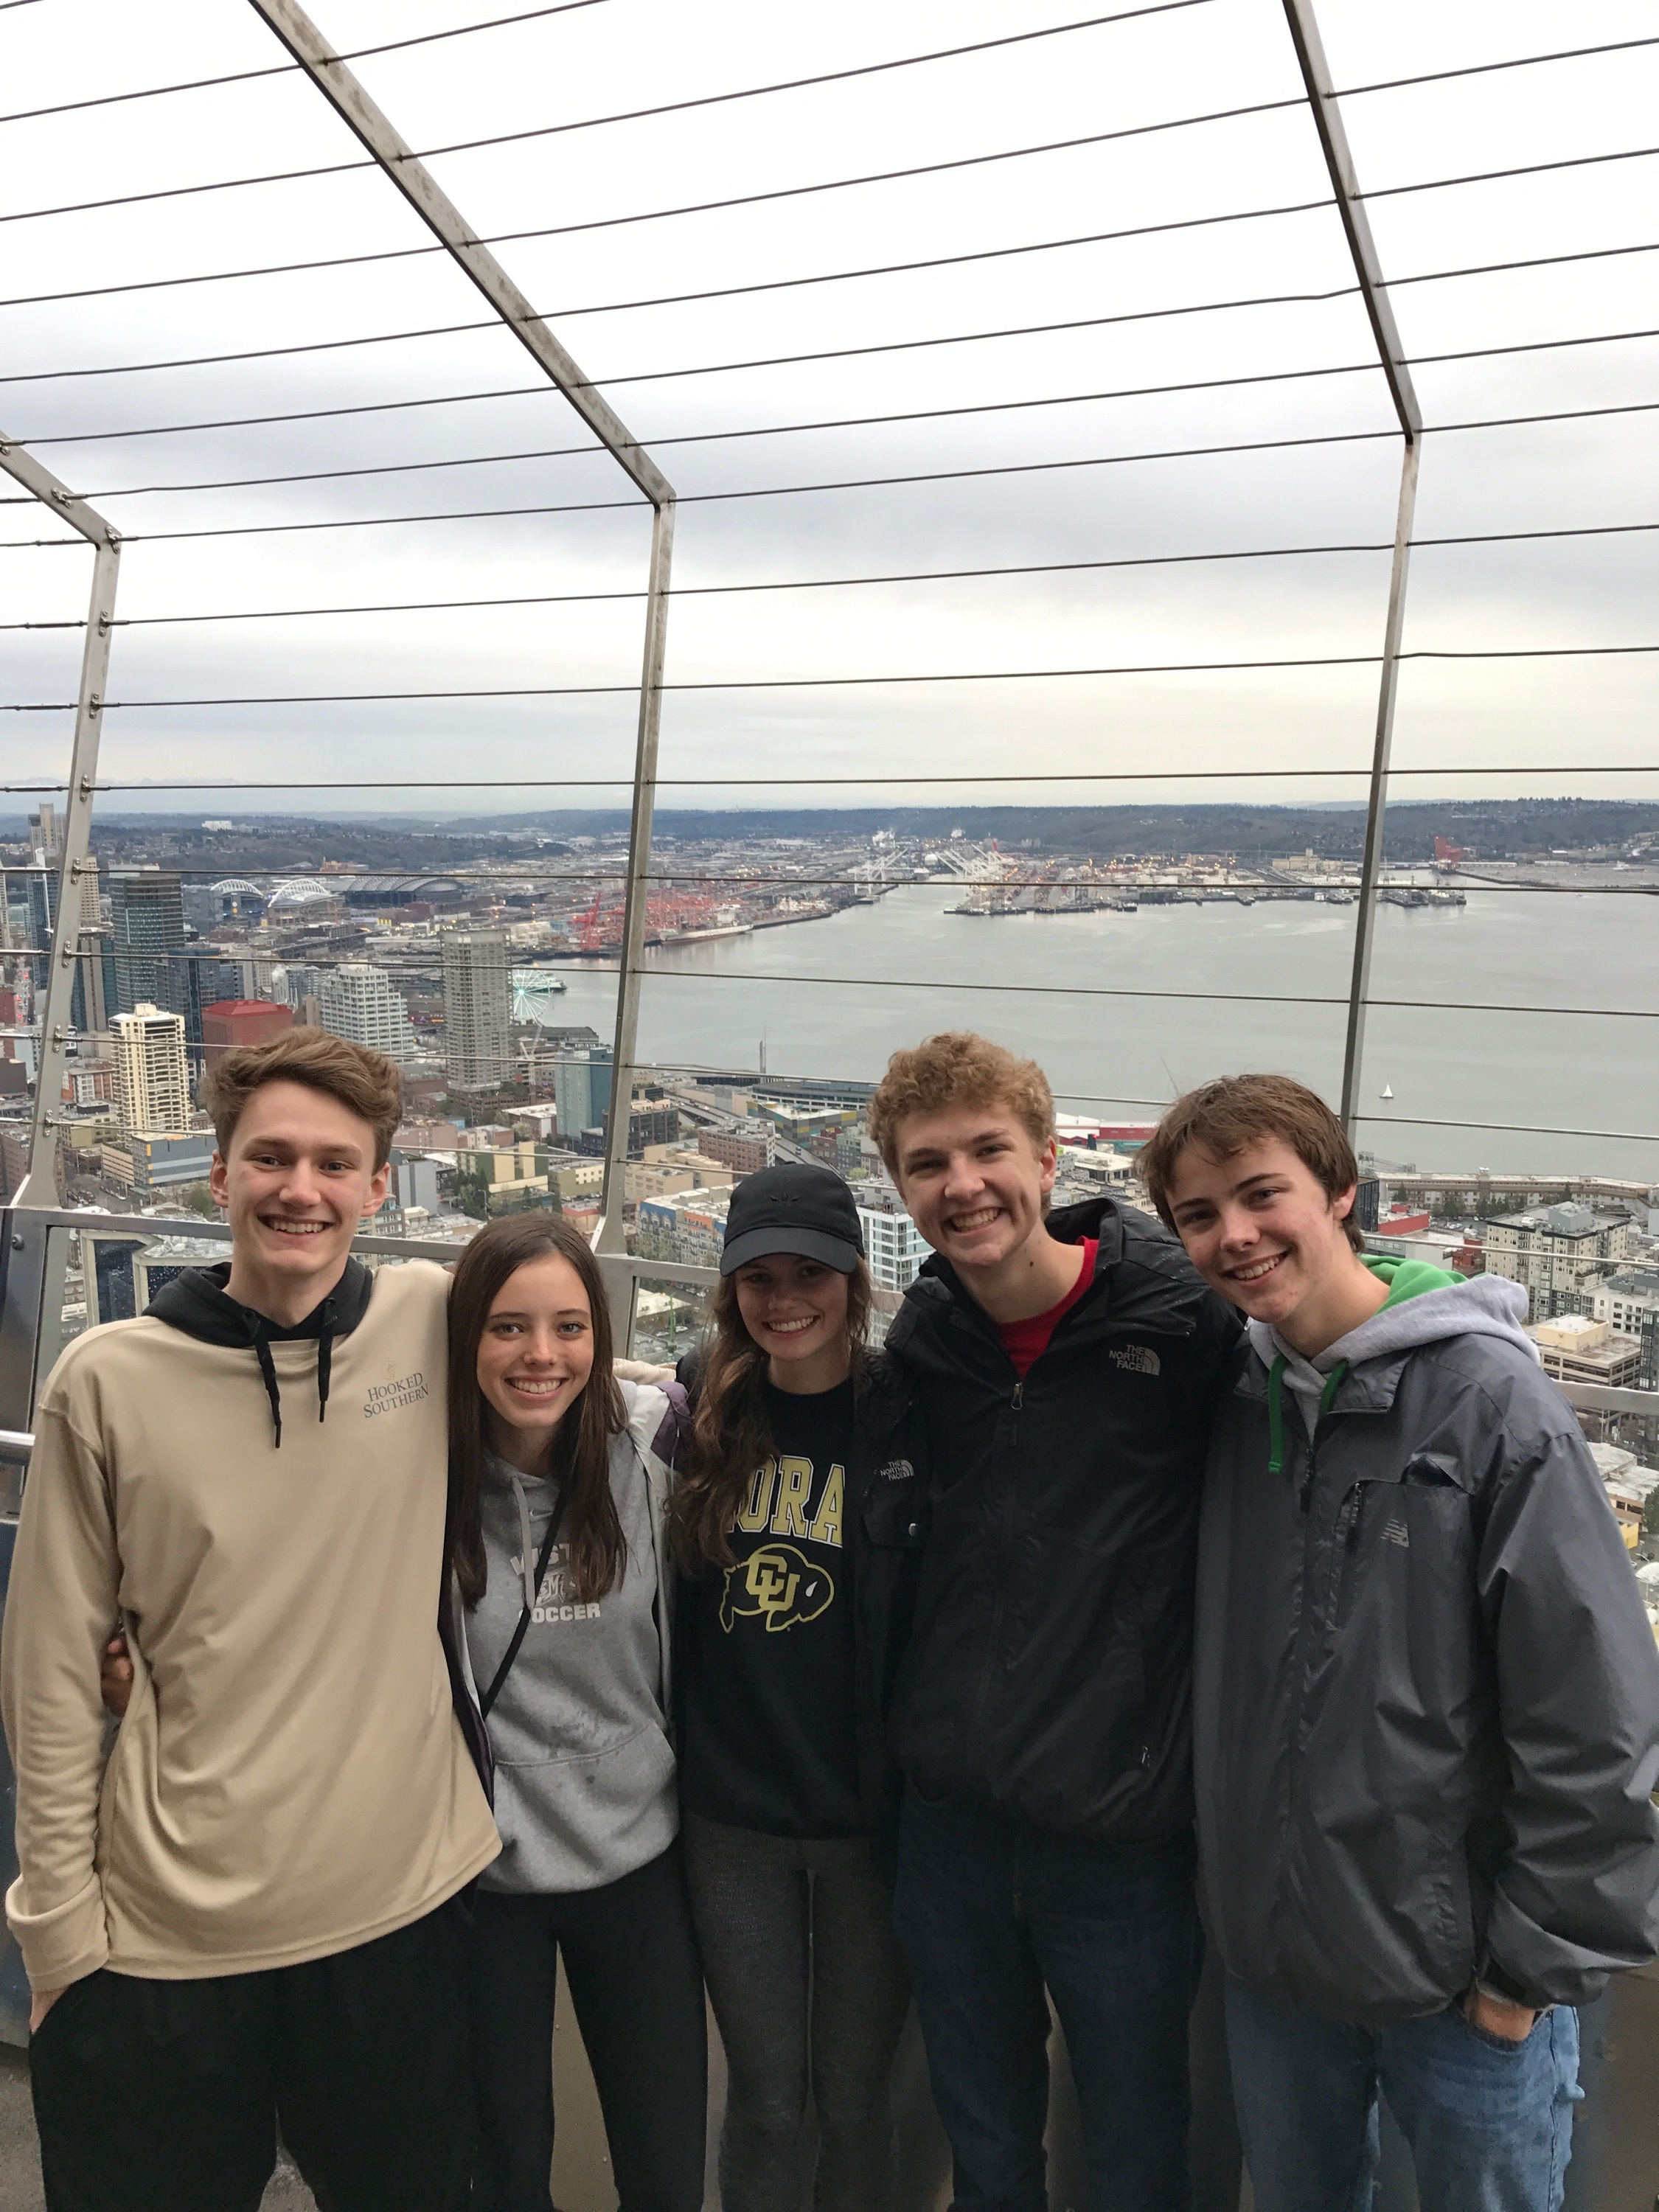 My best friends and I on top of the Space Needle in Seattle. We were at the 2017 spring national convention. They have been my biggest motivators and teachers in this program.